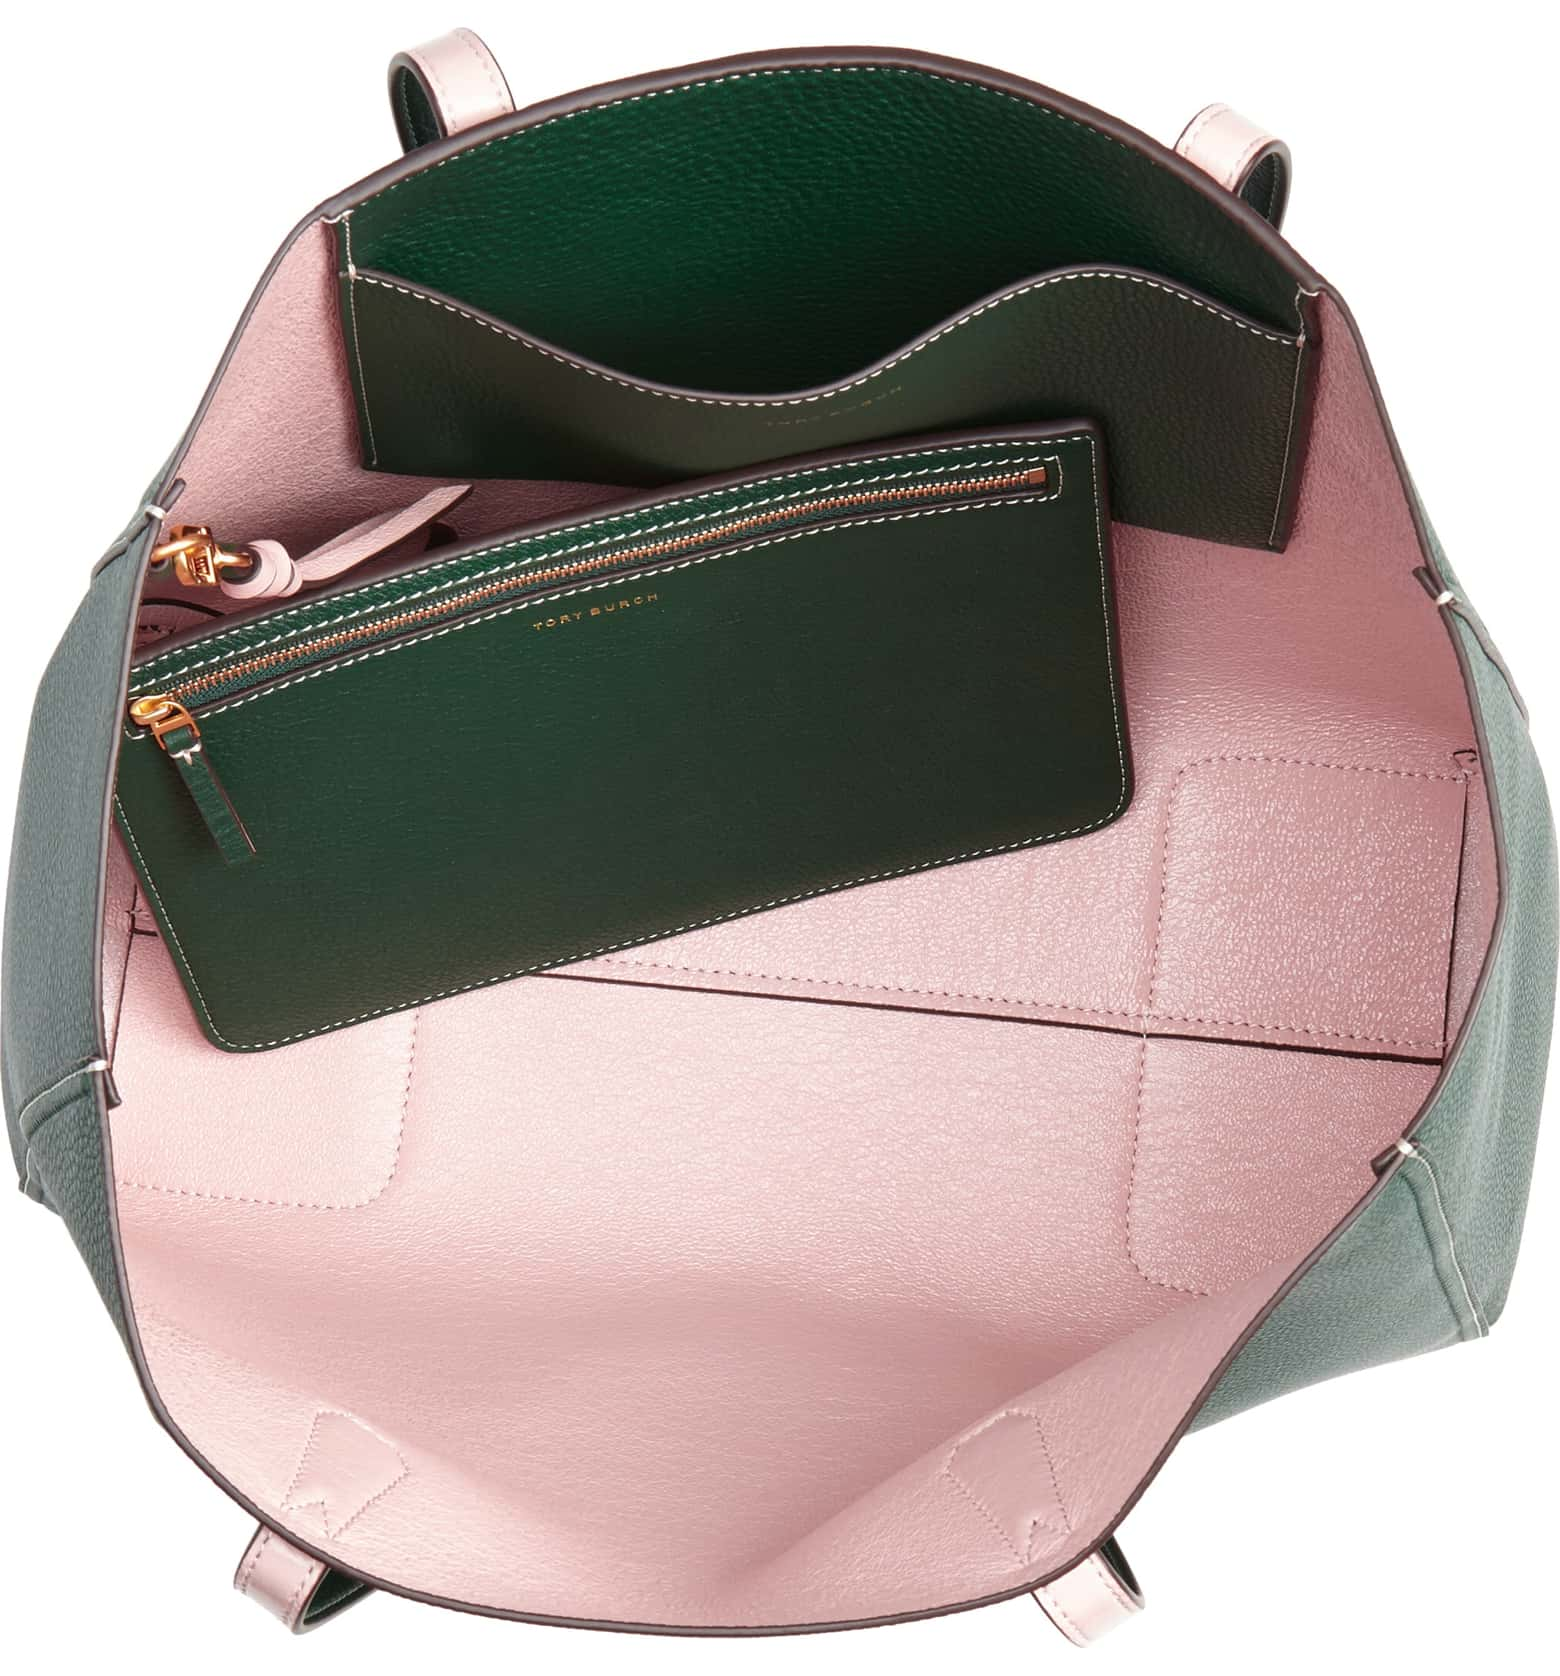 green tory burch tote with light pink interior